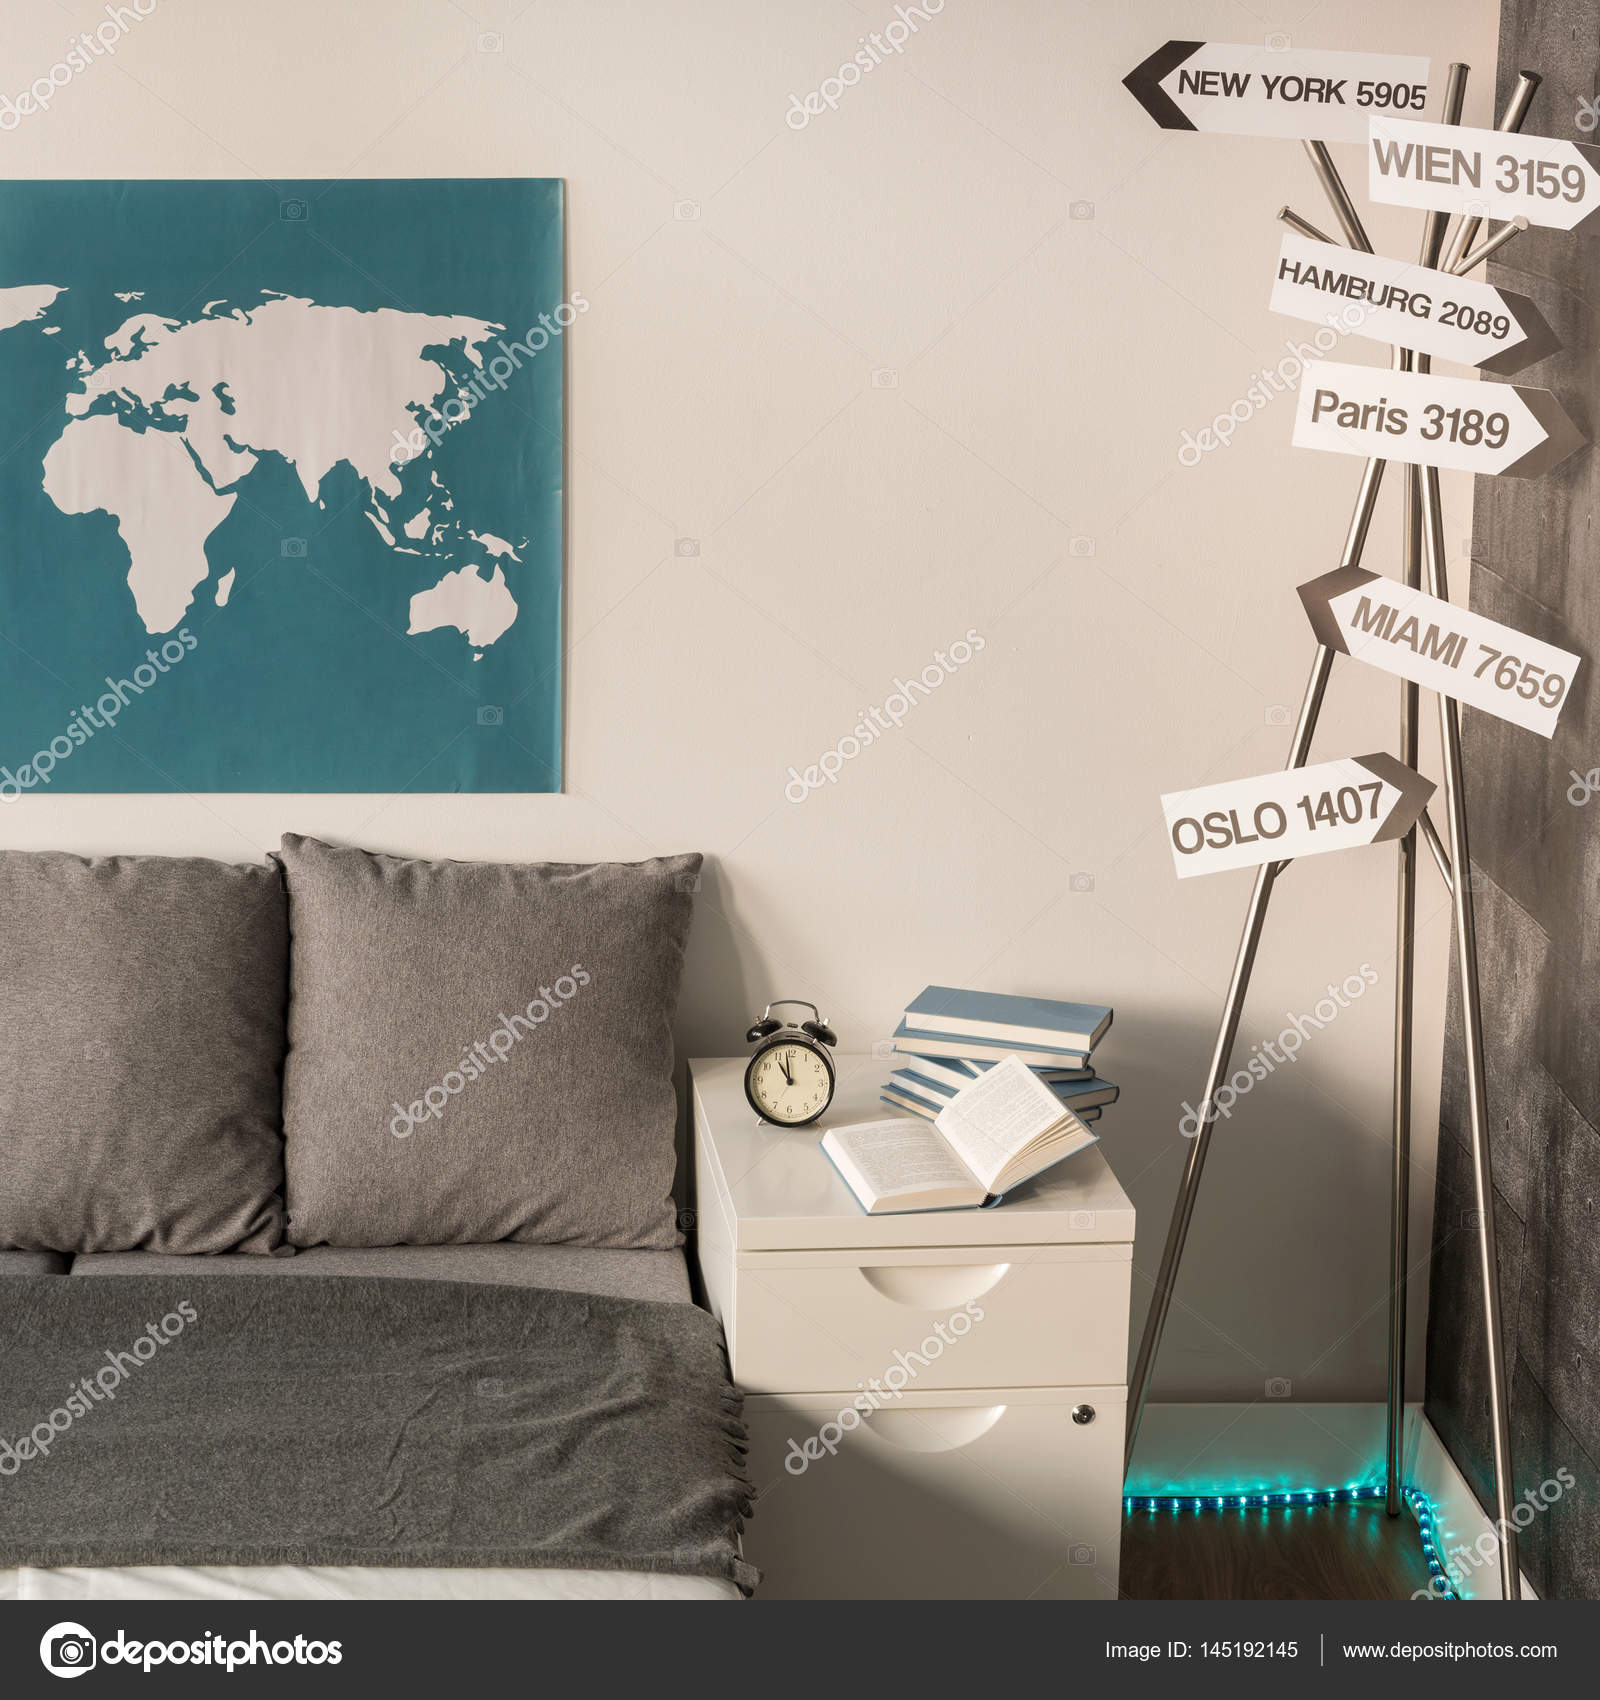 World Travel Themed Bedroom Travel Around The World In Own Home Stock Photo C Photographee Eu 145192145